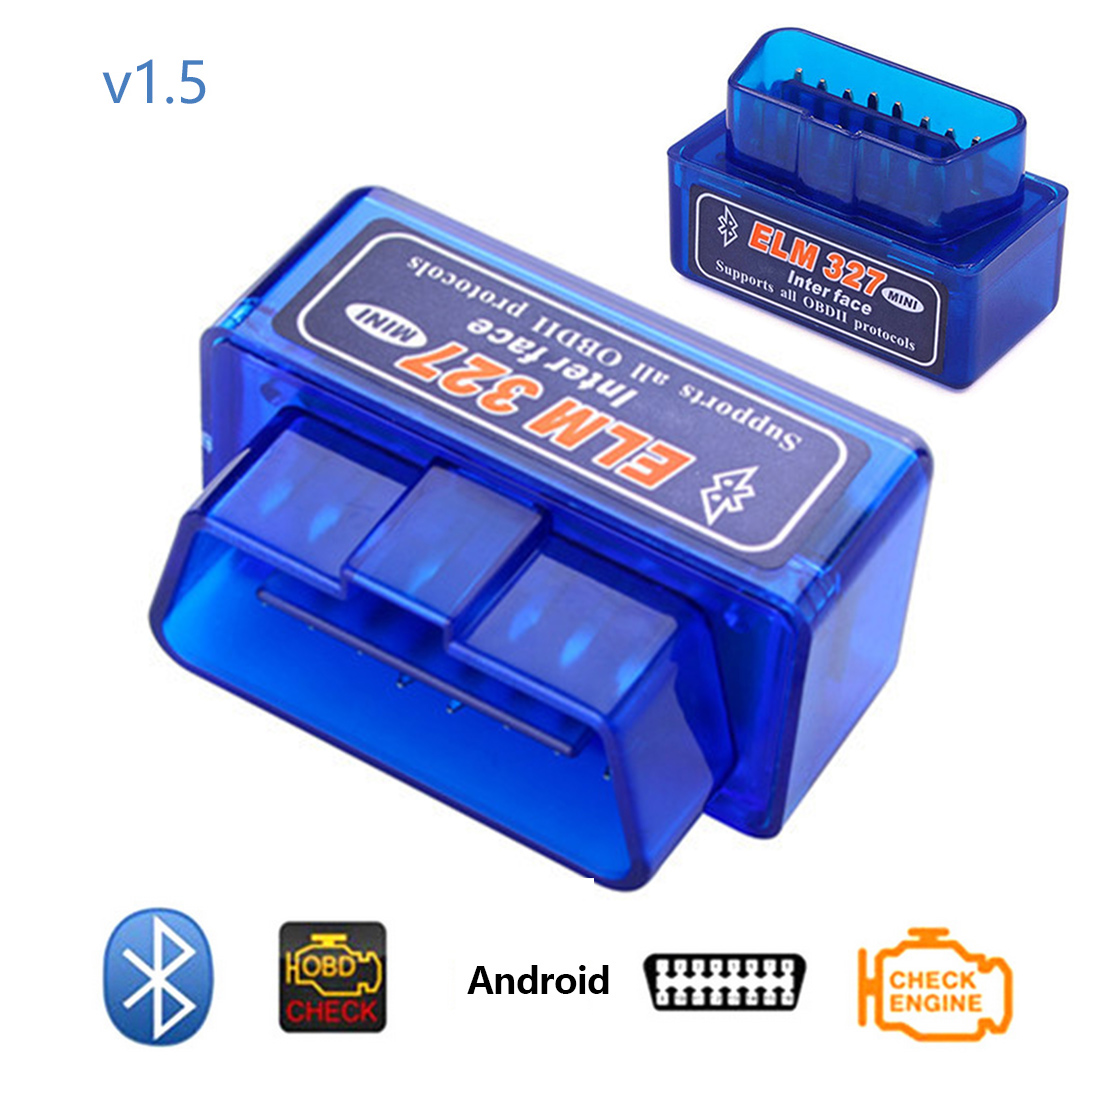 Dewtreetali Car Diagnostic Tool OBD2 V1.5 Bluetooth Mini Elm <font><b>327</b></font> V 1.5 OBD <font><b>2</b></font> Interface Auto Code Scanner OBDII Elm327 Adapter image